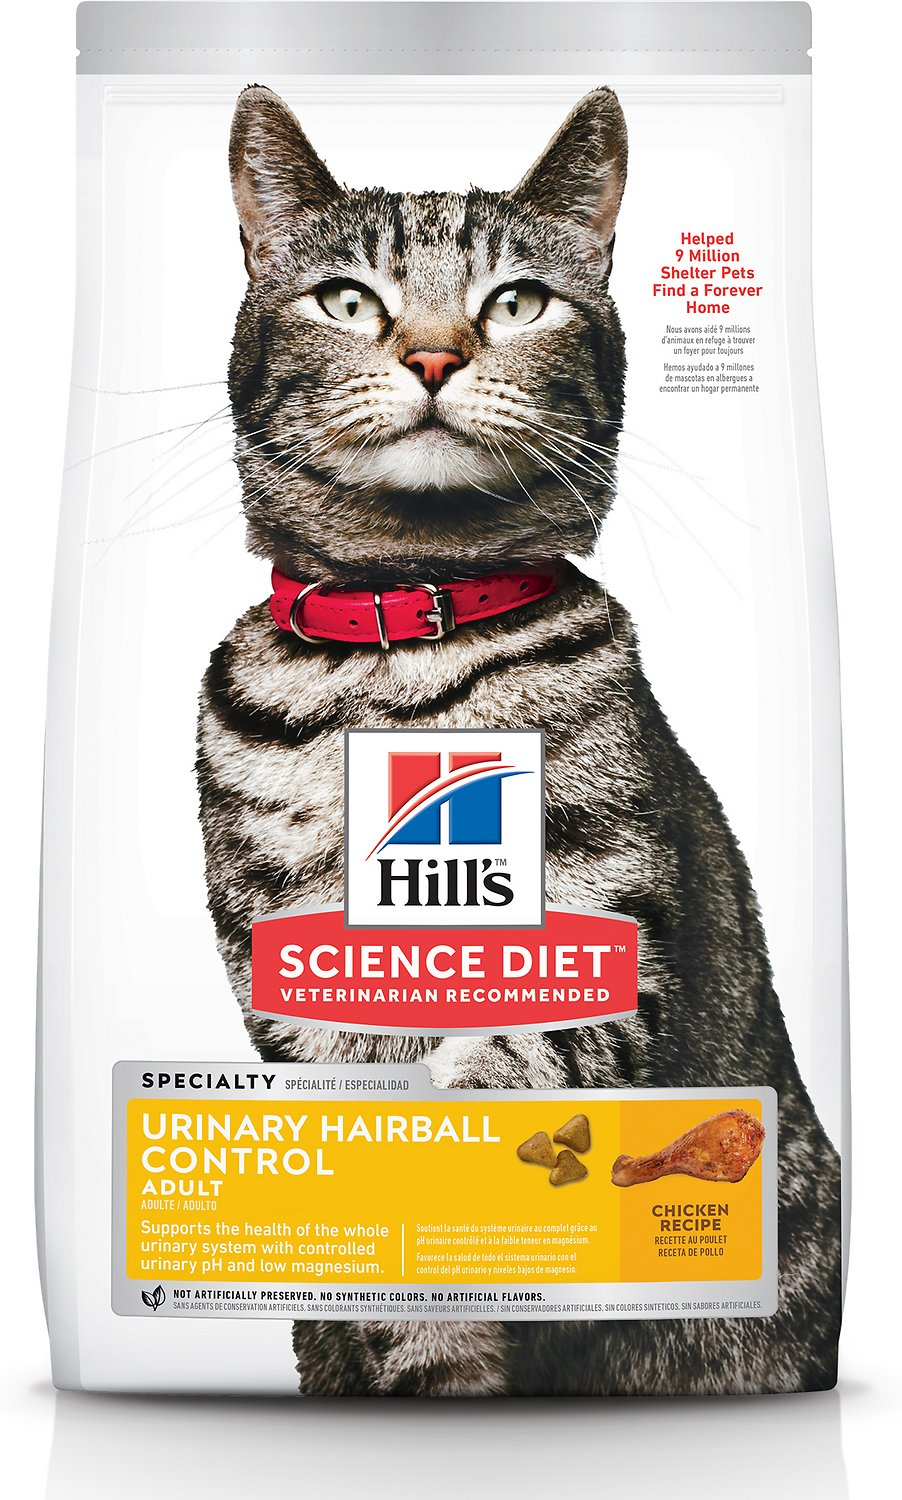 Best Cat Food for Hairball Control (5 Effective Options)